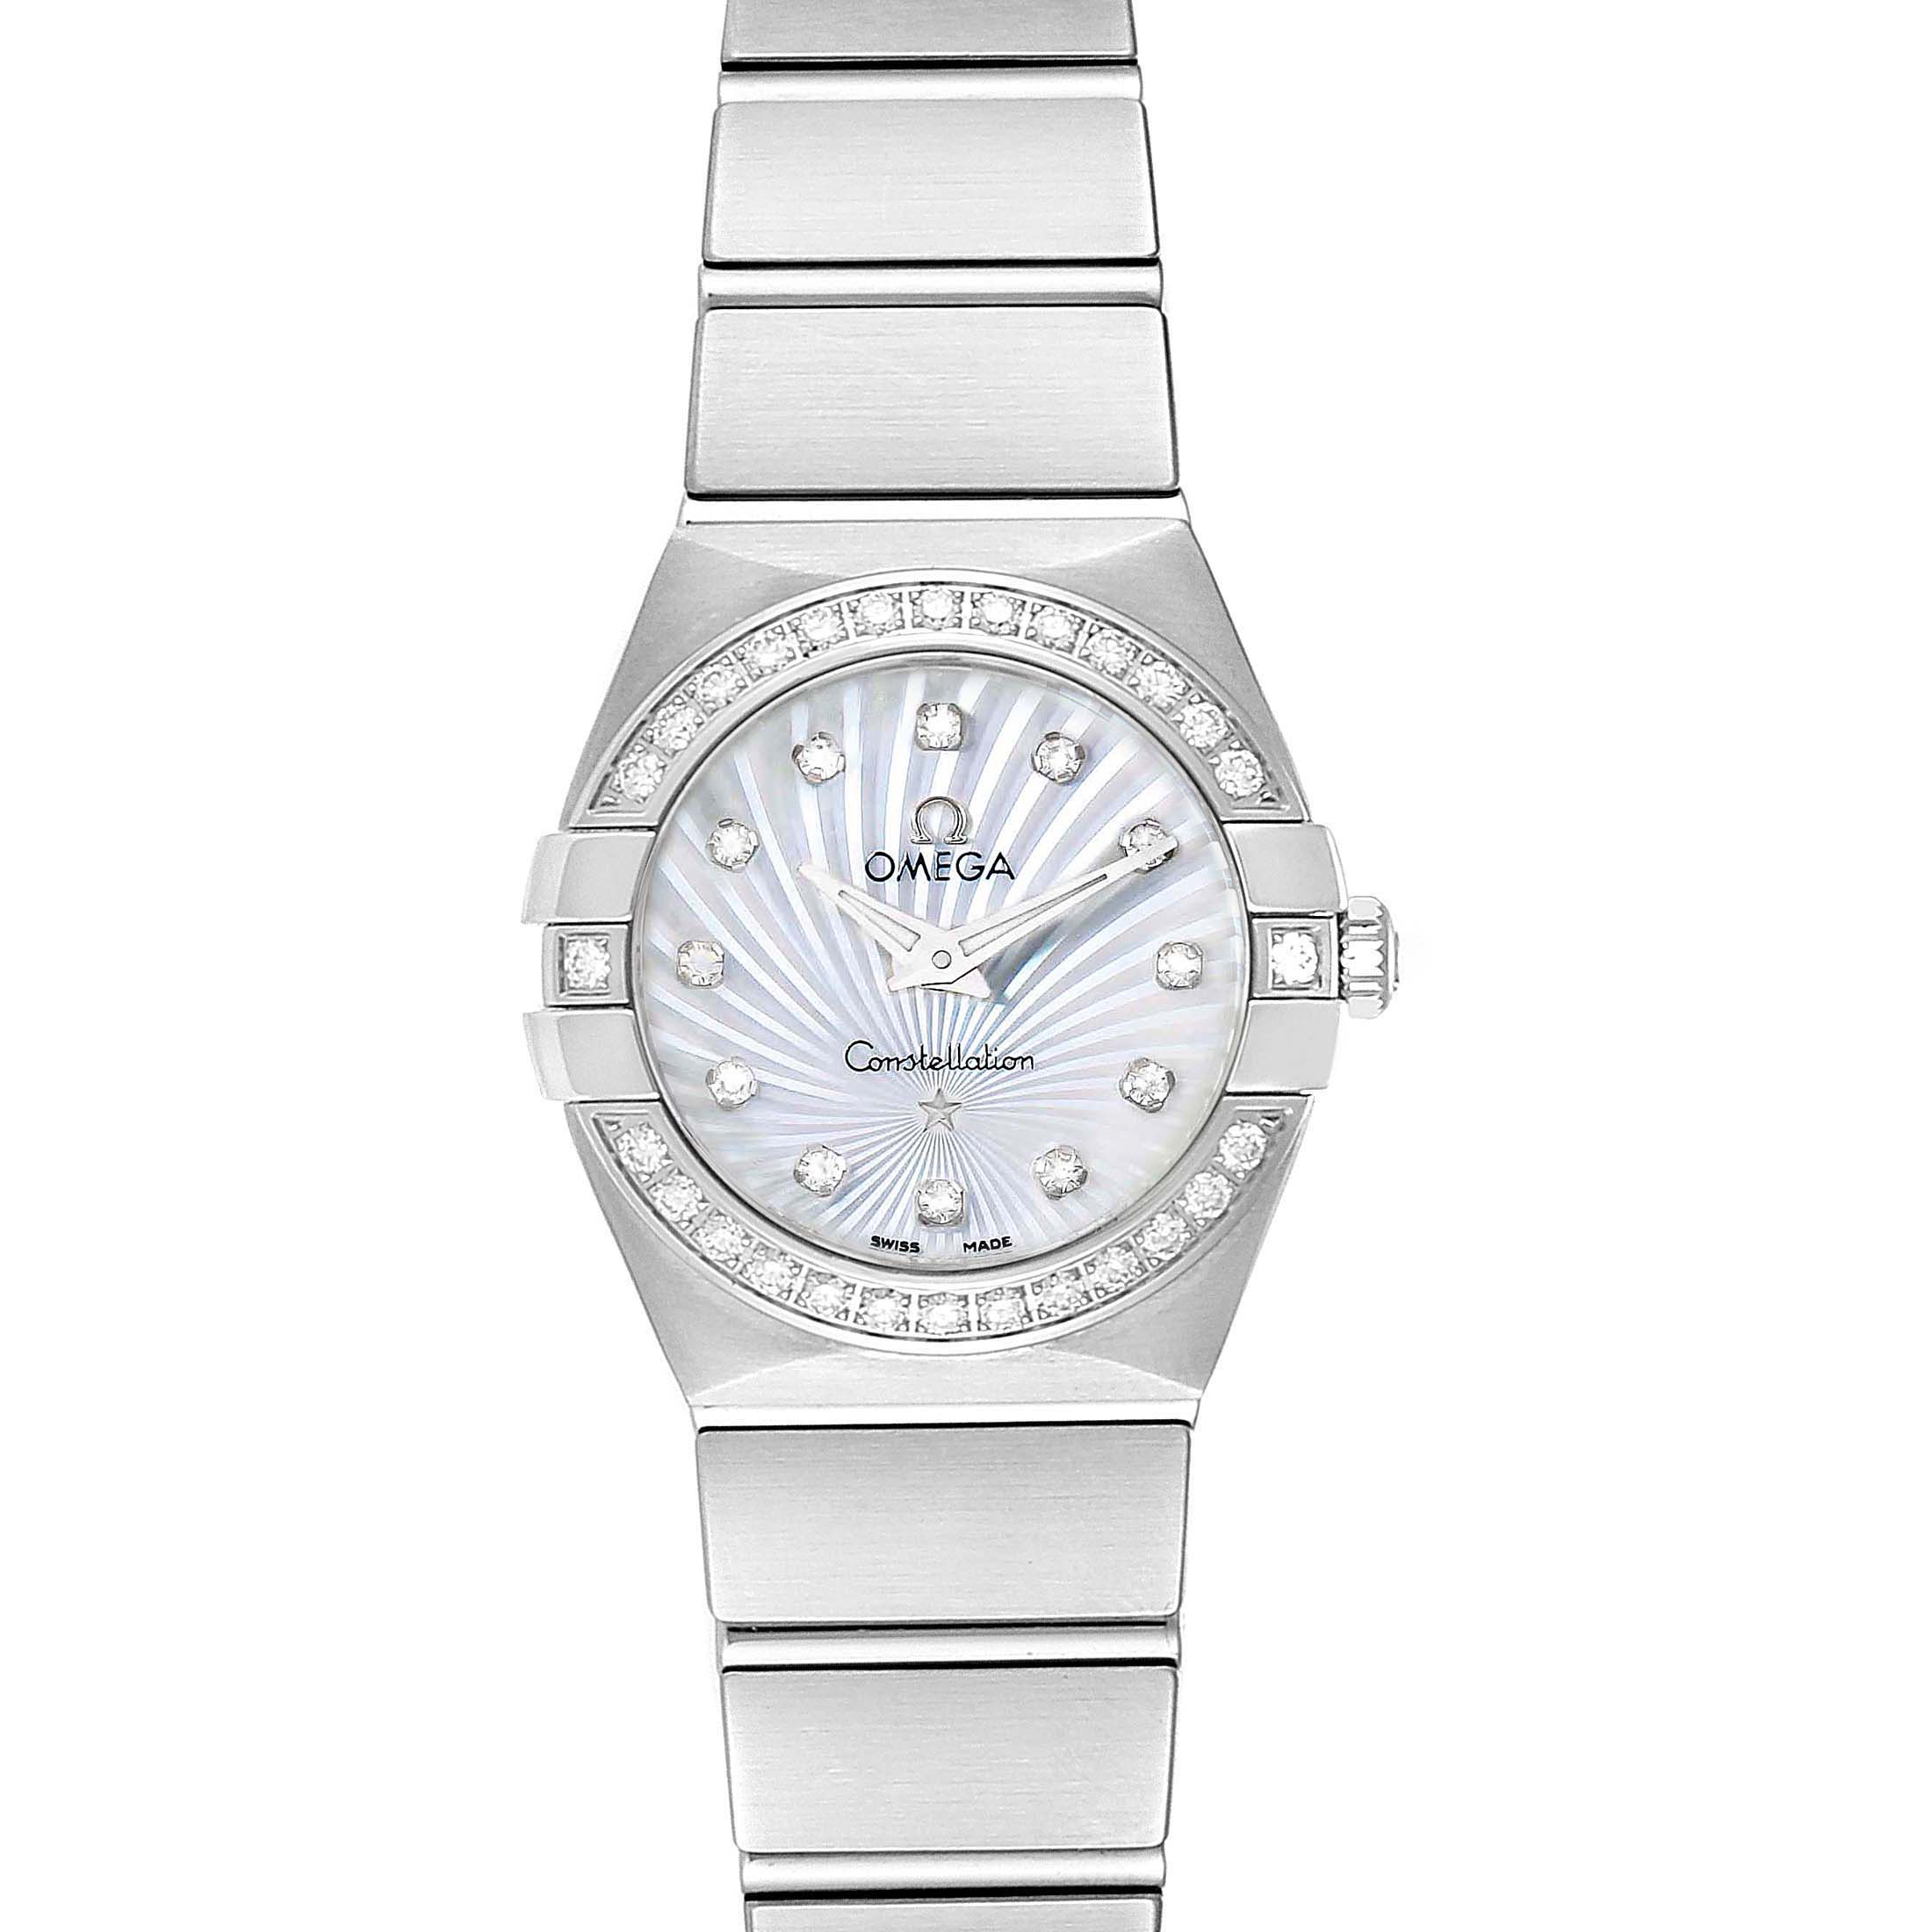 Omega Constellation 24 MOP Diamond Watch 123.15.24.60.55.004 Unworn